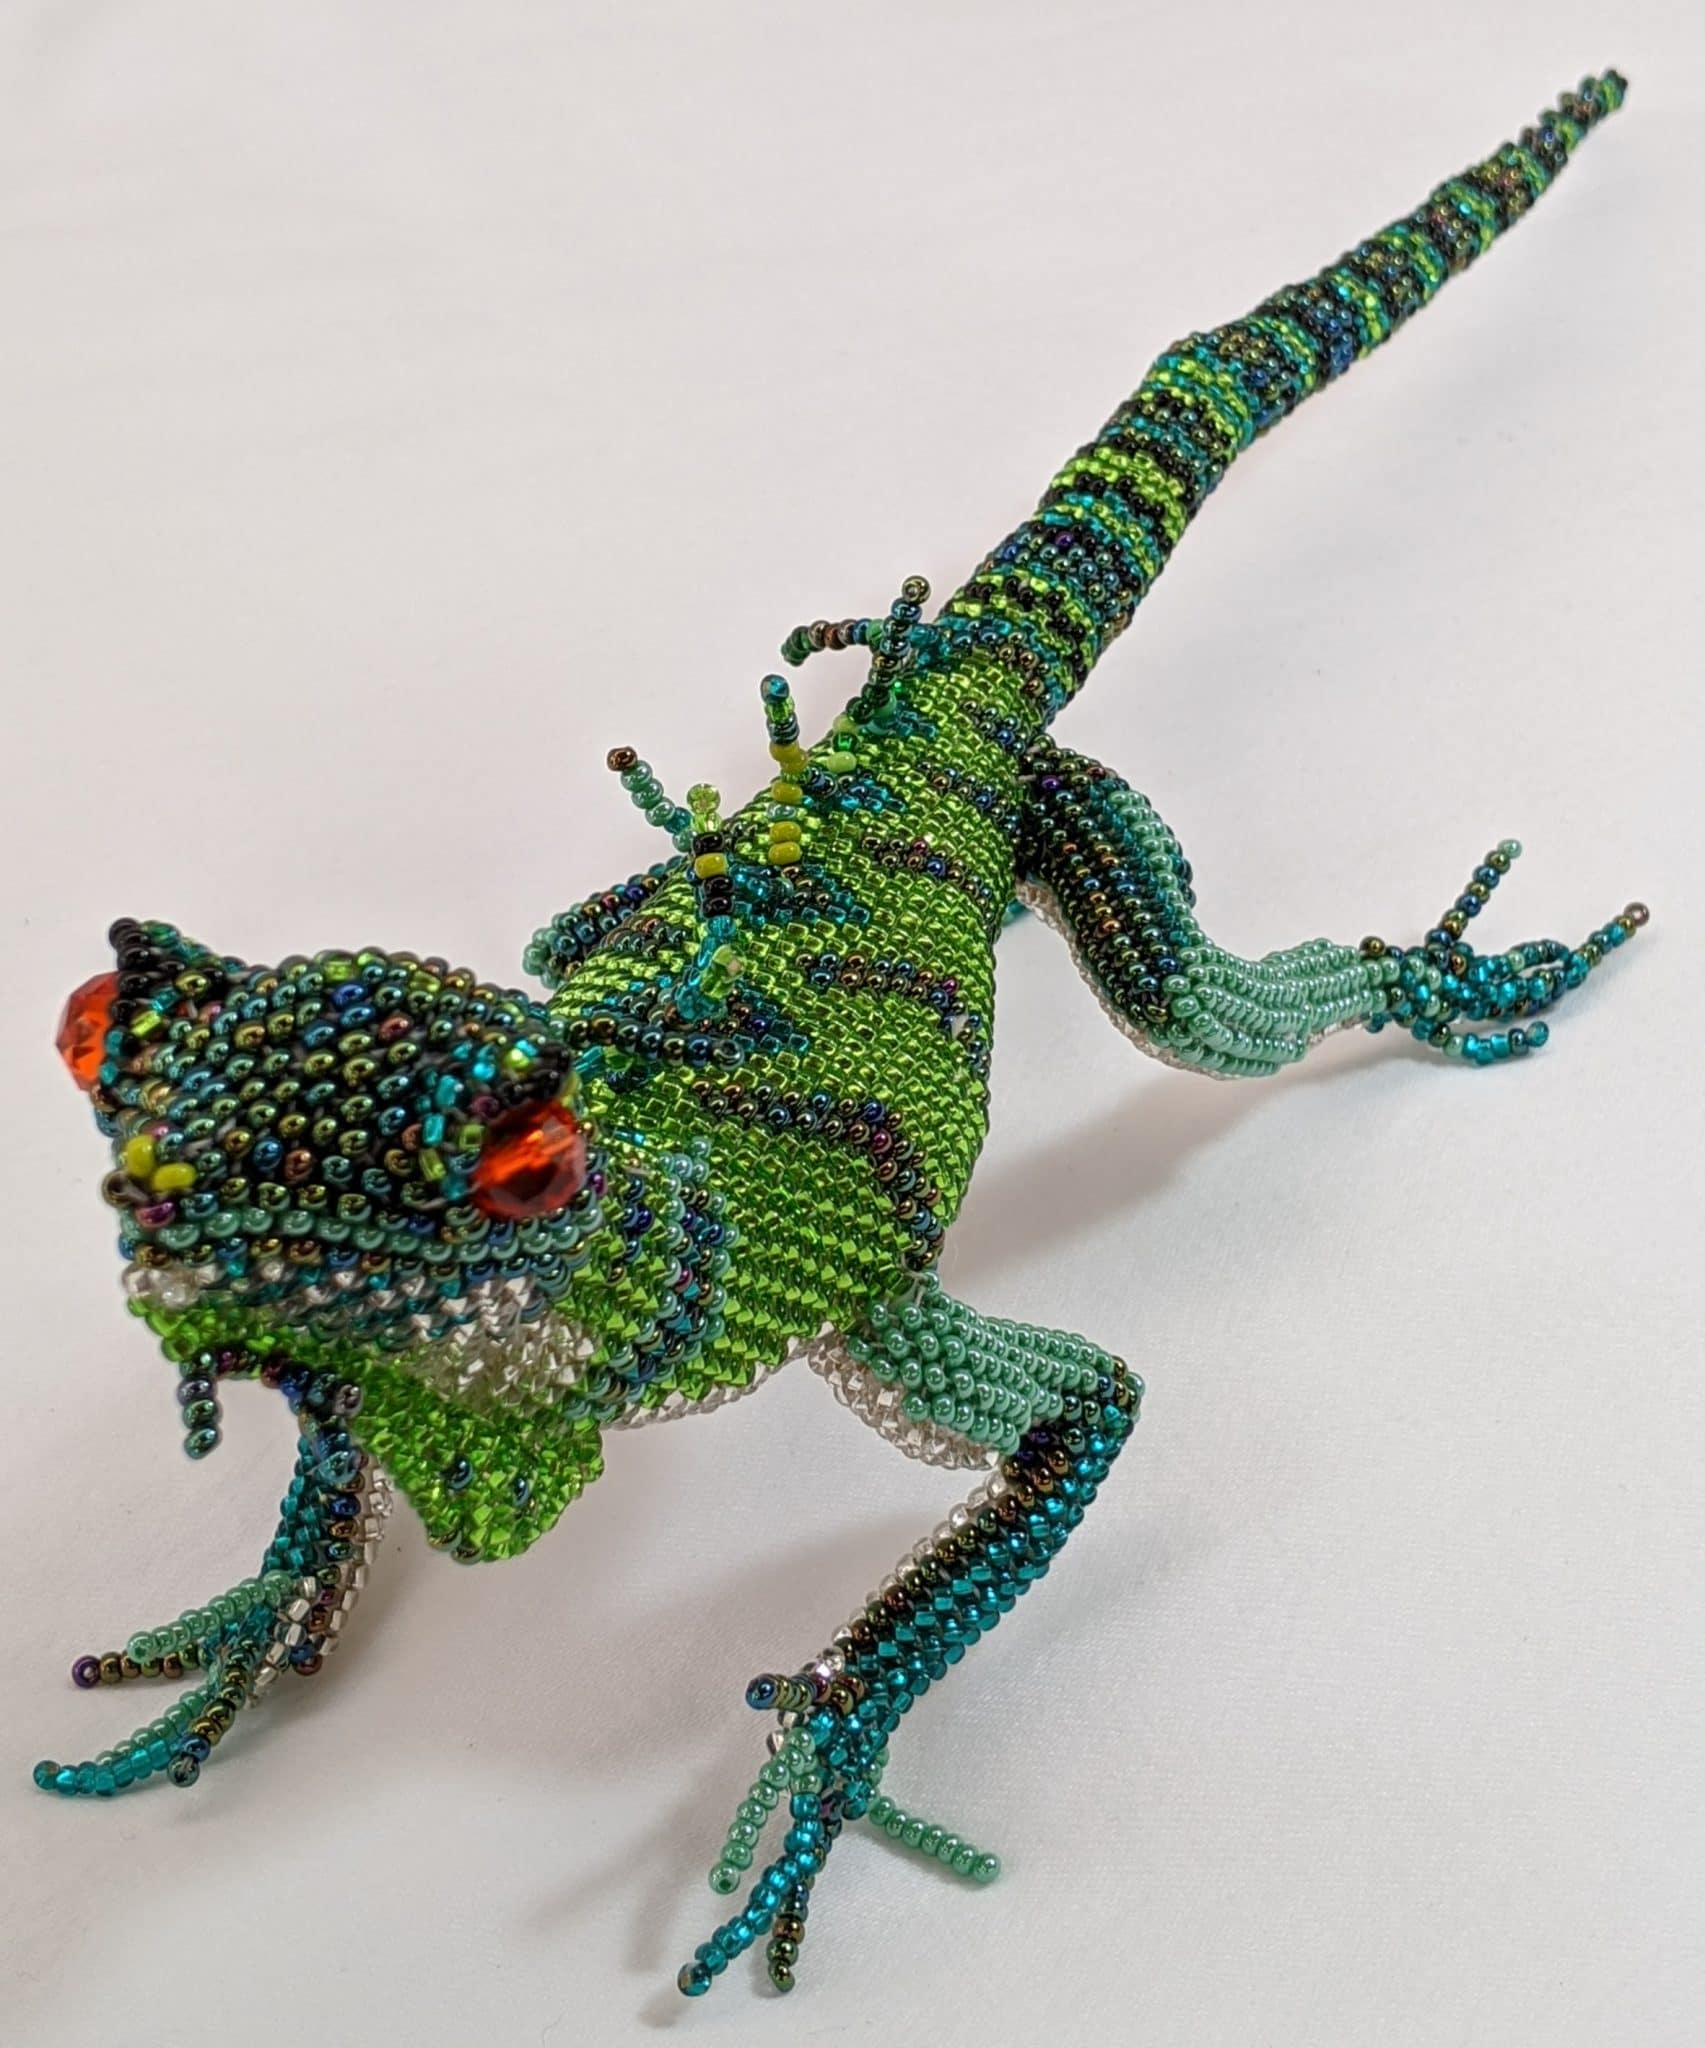 Large Lizard Beaded Table Ornament - Green